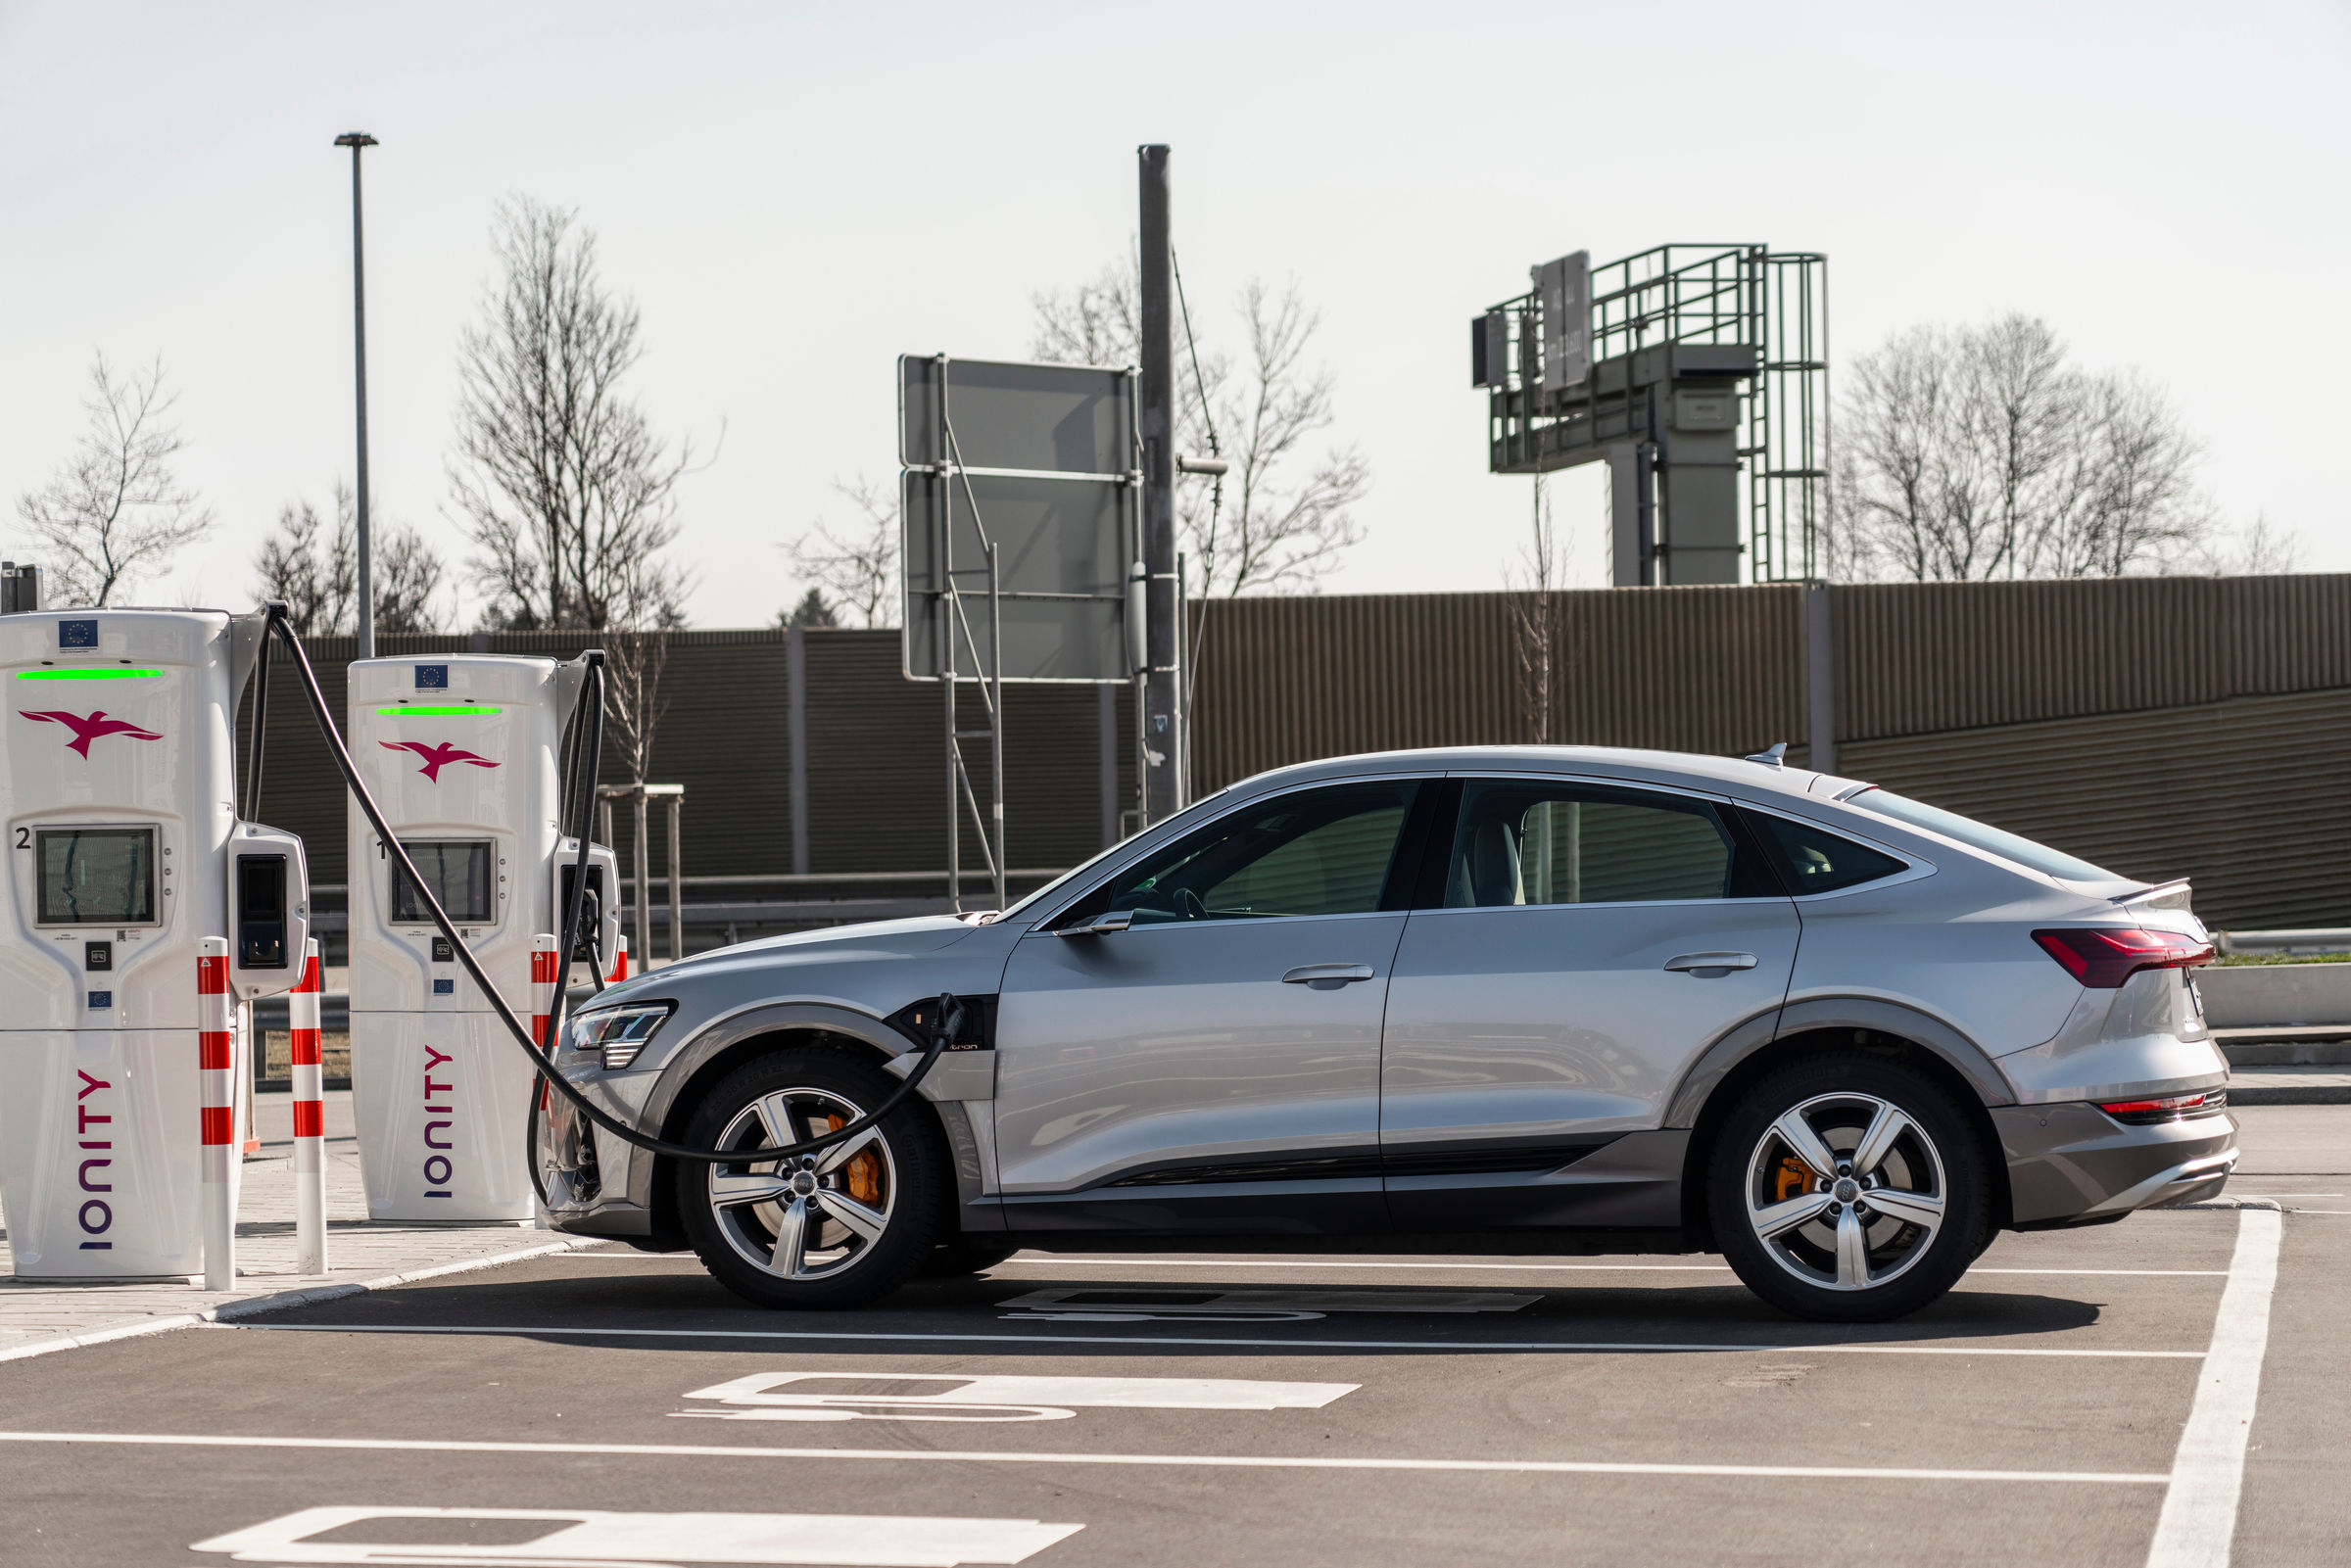 Charging capacity vs. charging speed: What constitutes high charging performance